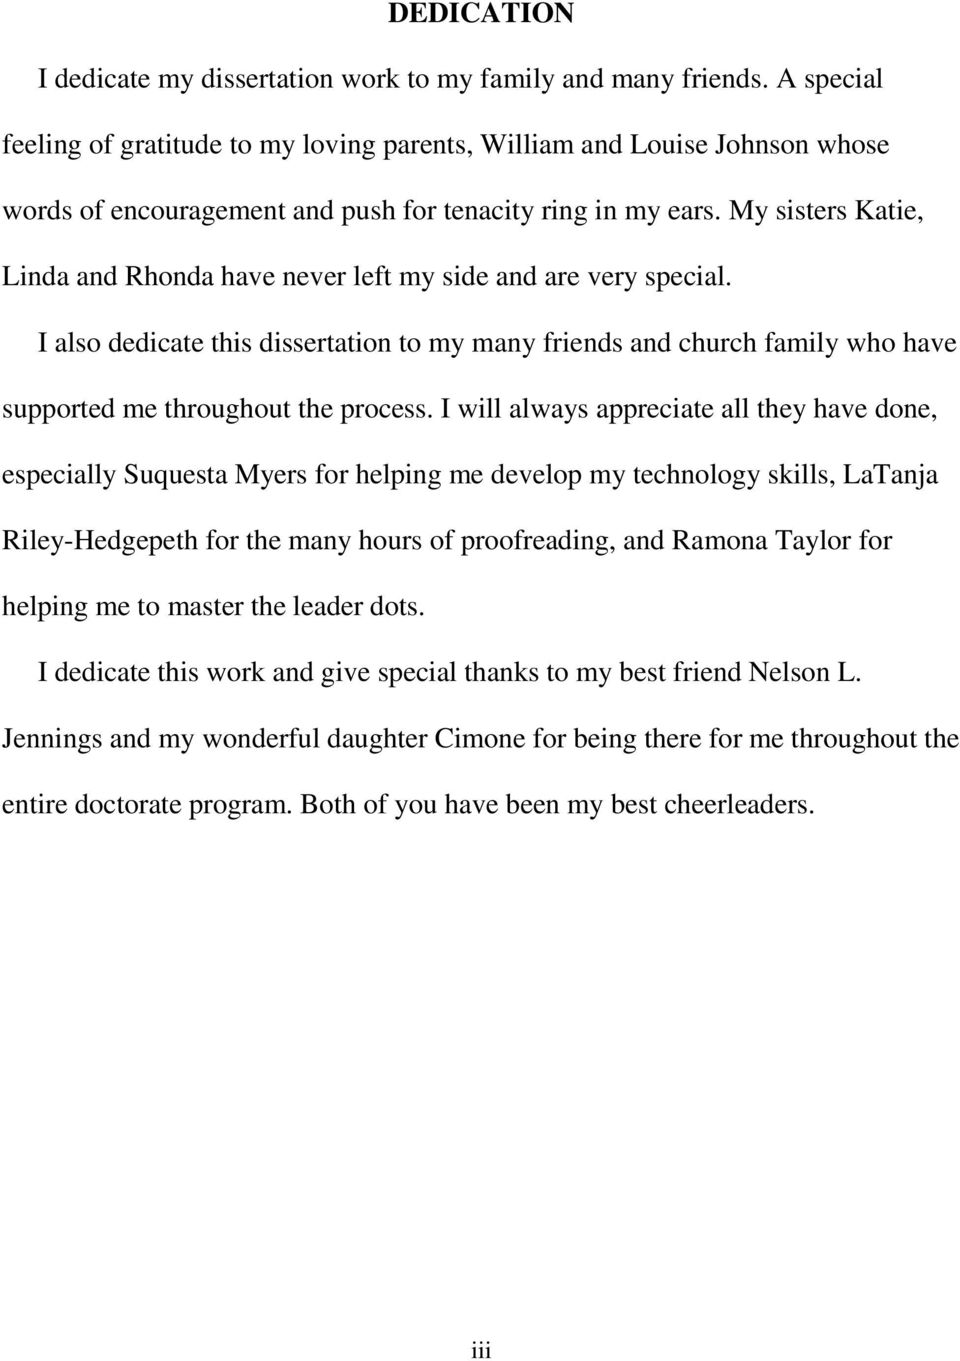 Dedication I Dedicate My Dissertation Work To My Family And Many